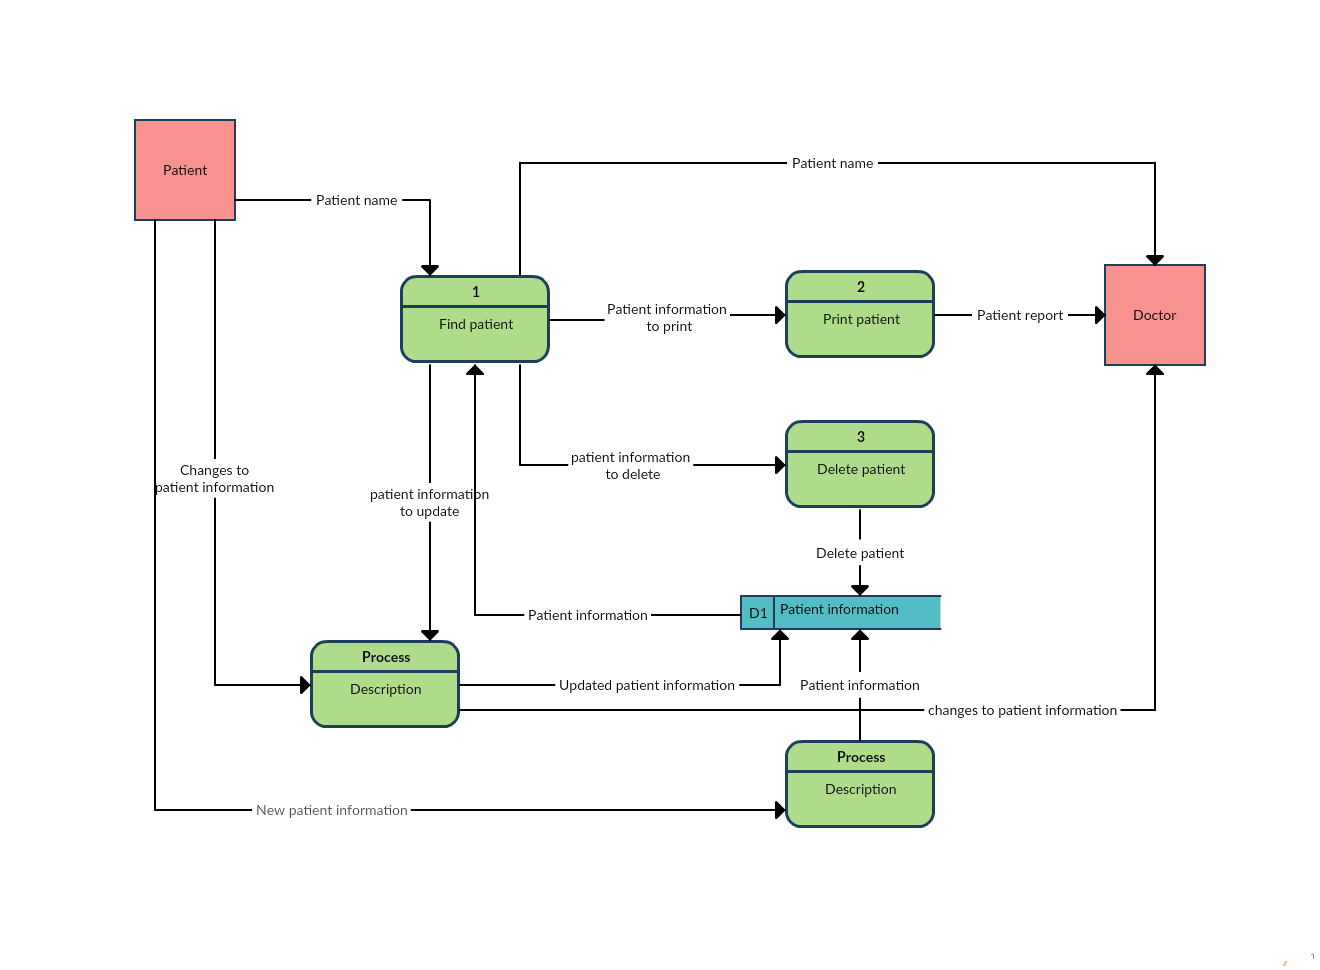 Data flow diagram templates to map data flows creately blog data flow diagram template of a patient information system nvjuhfo Images